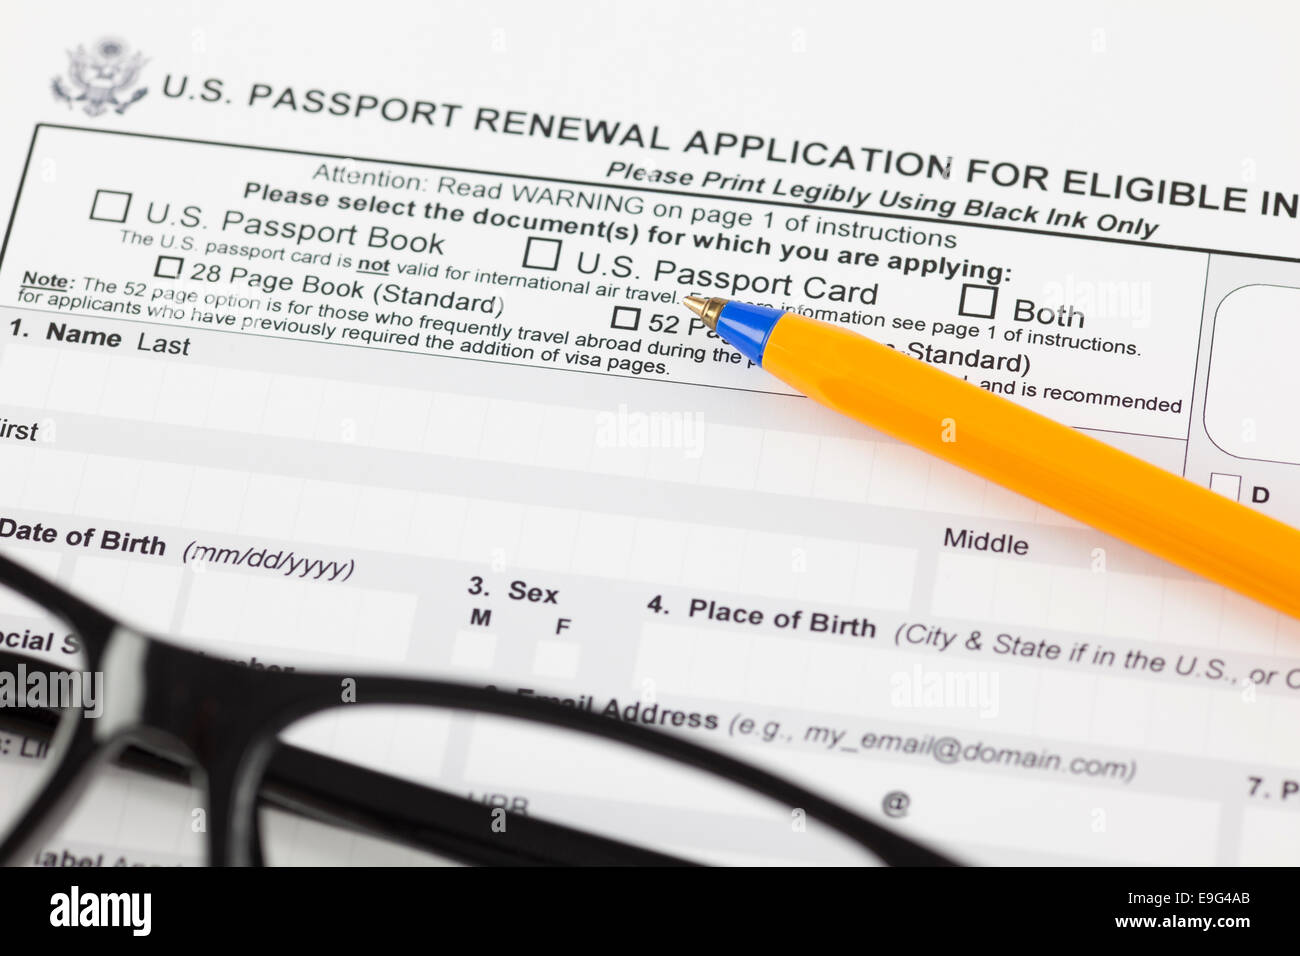 U.S. passport renewal application for eligible individuals with ballpoint pen and glasses. - Stock Image